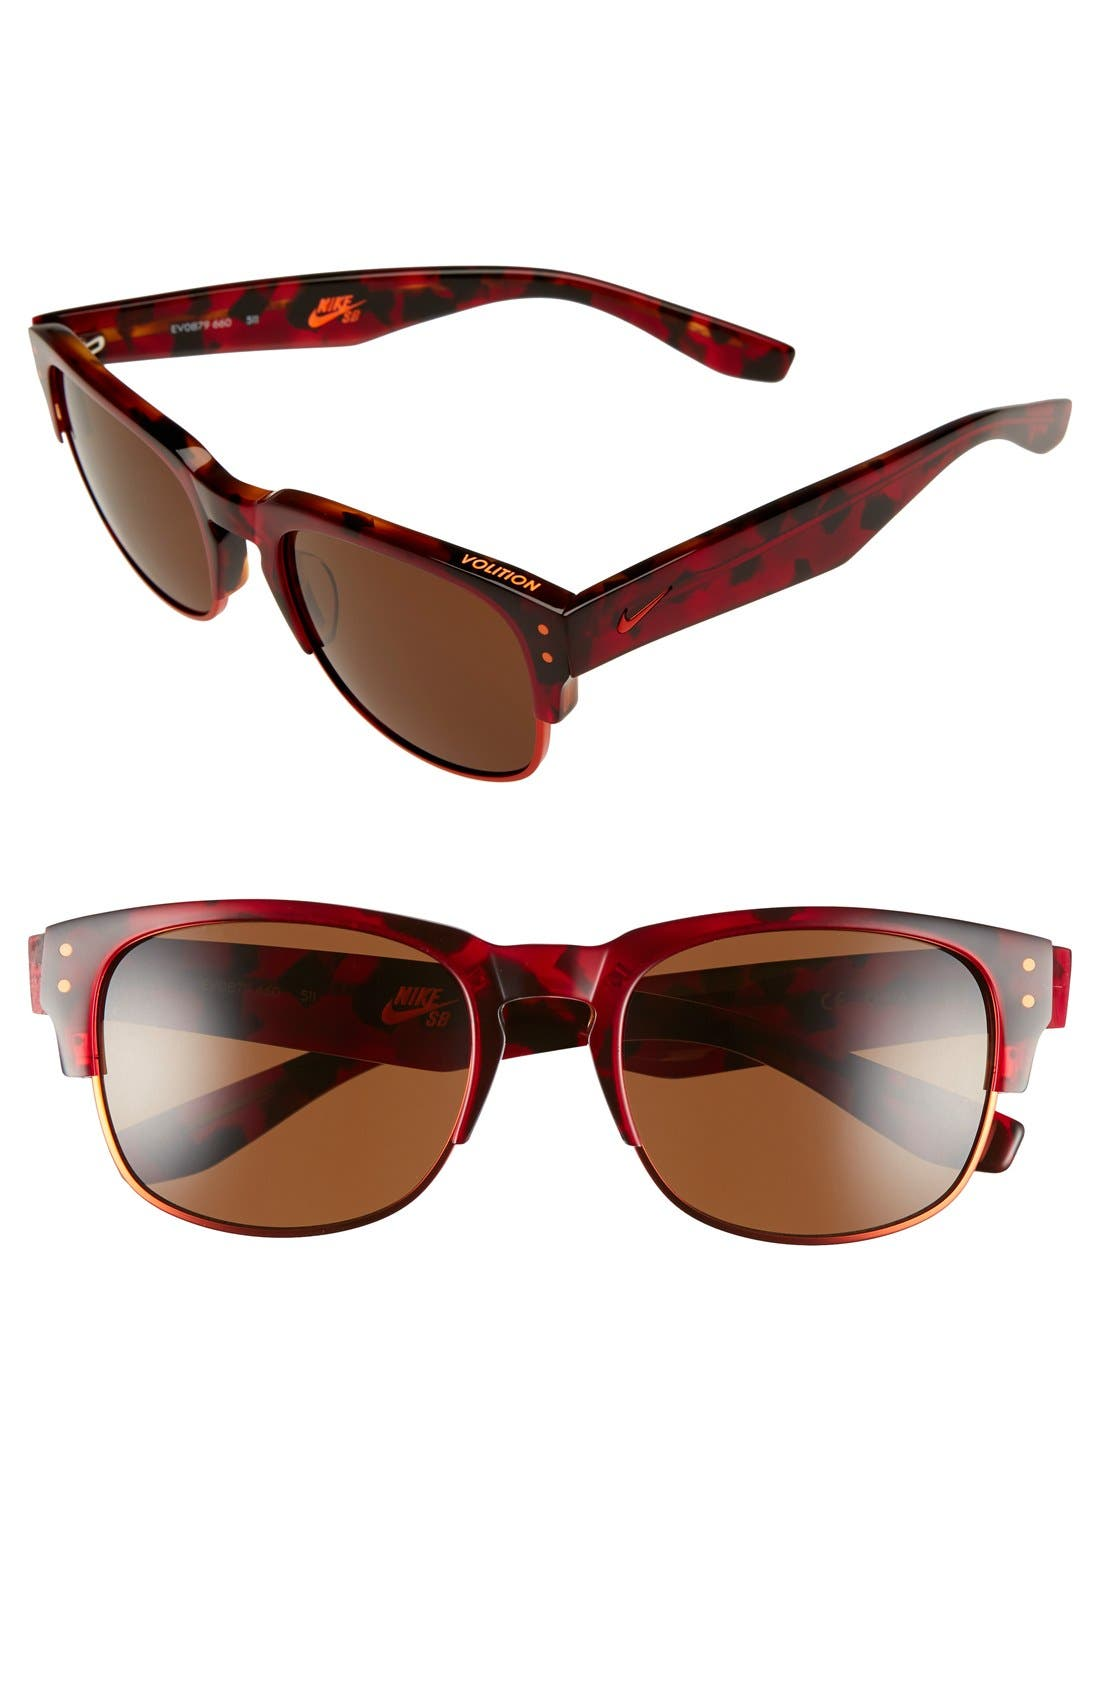 Volition 54mm Sunglasses,                         Main,                         color, RED TORTOISE